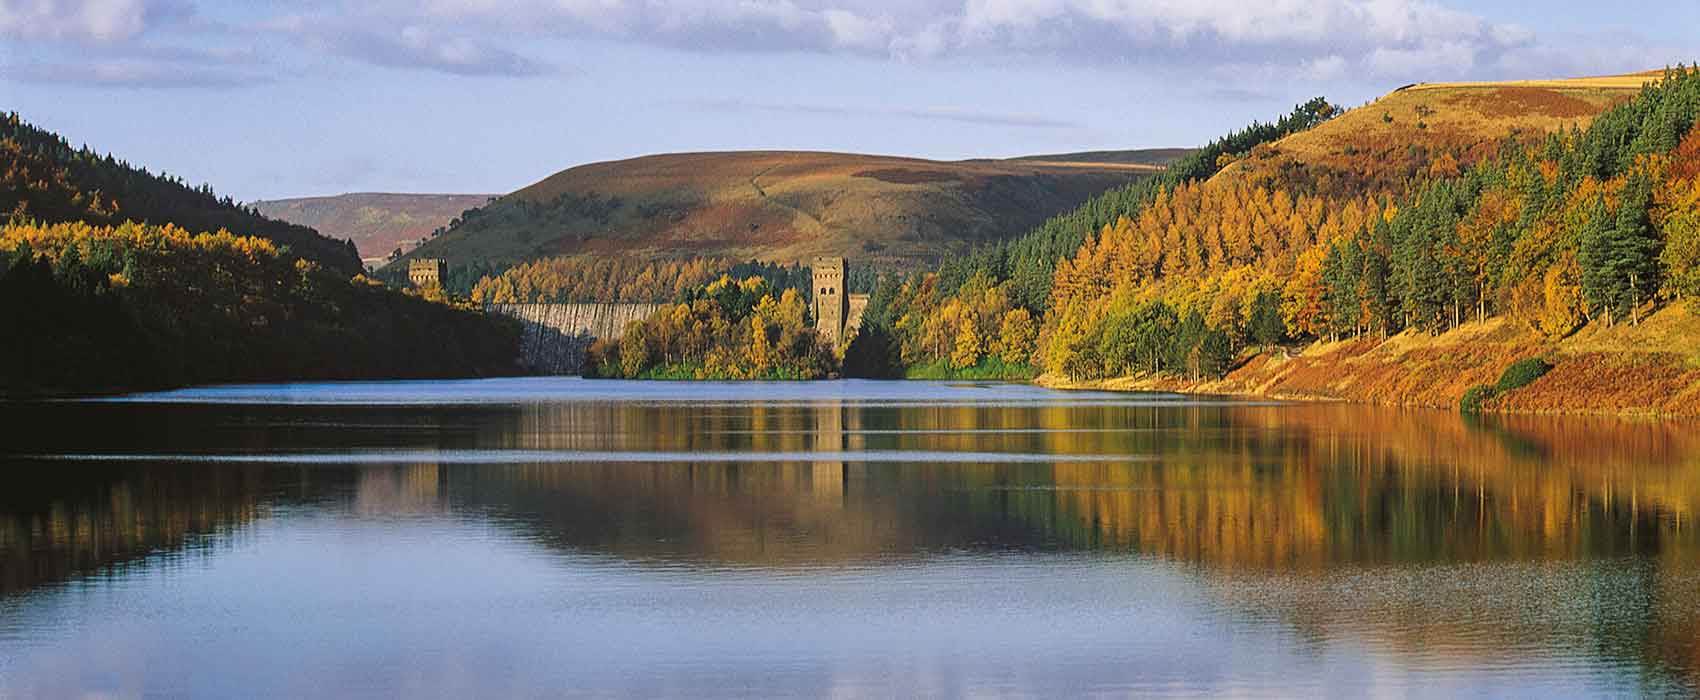 View across reservoir to Howden dam in Peak District